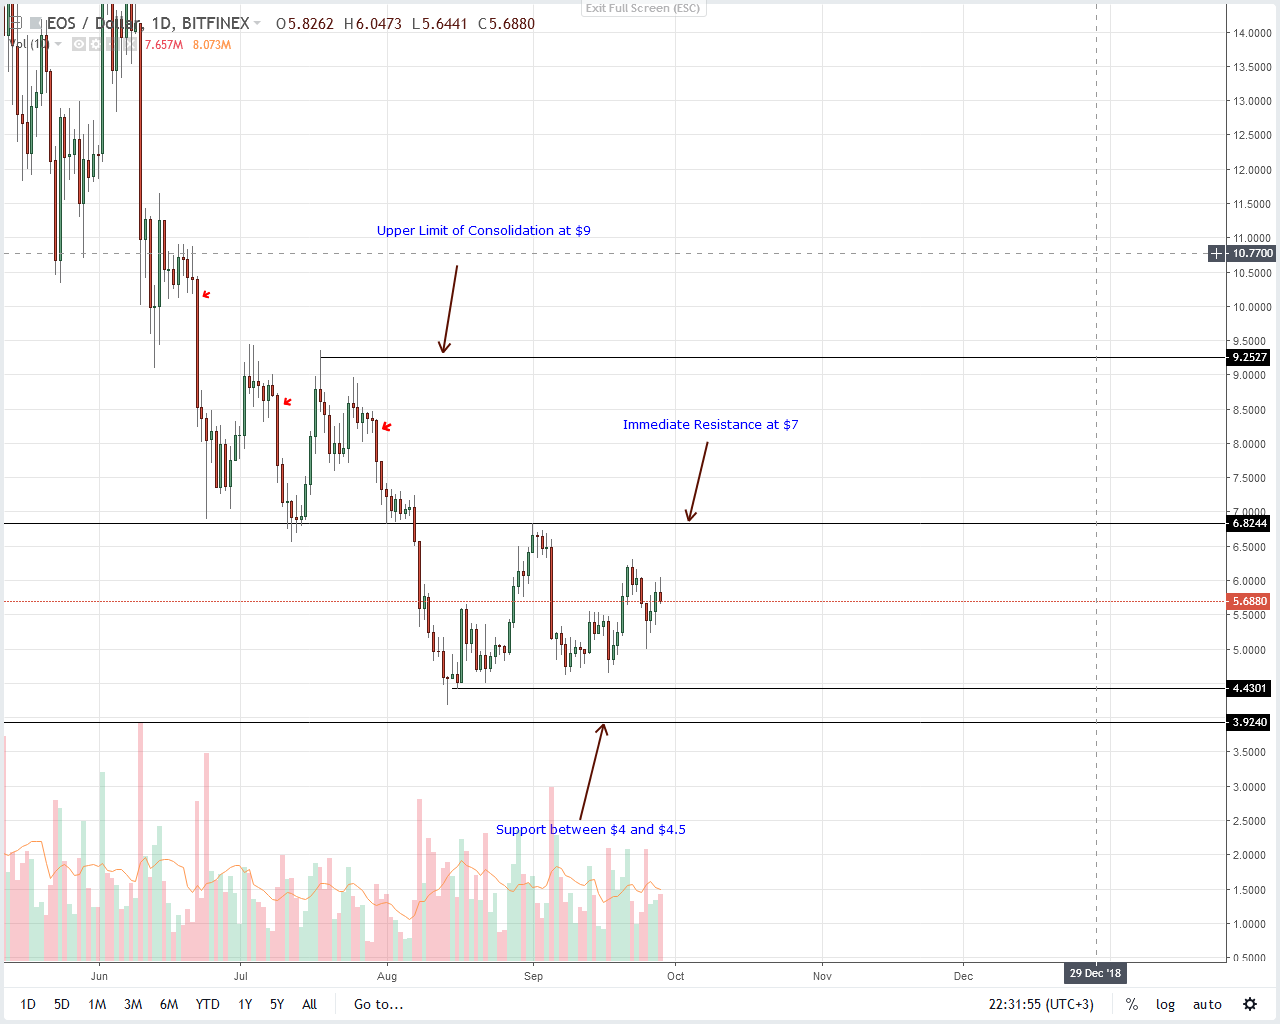 EOS Daily Chart Sep 29